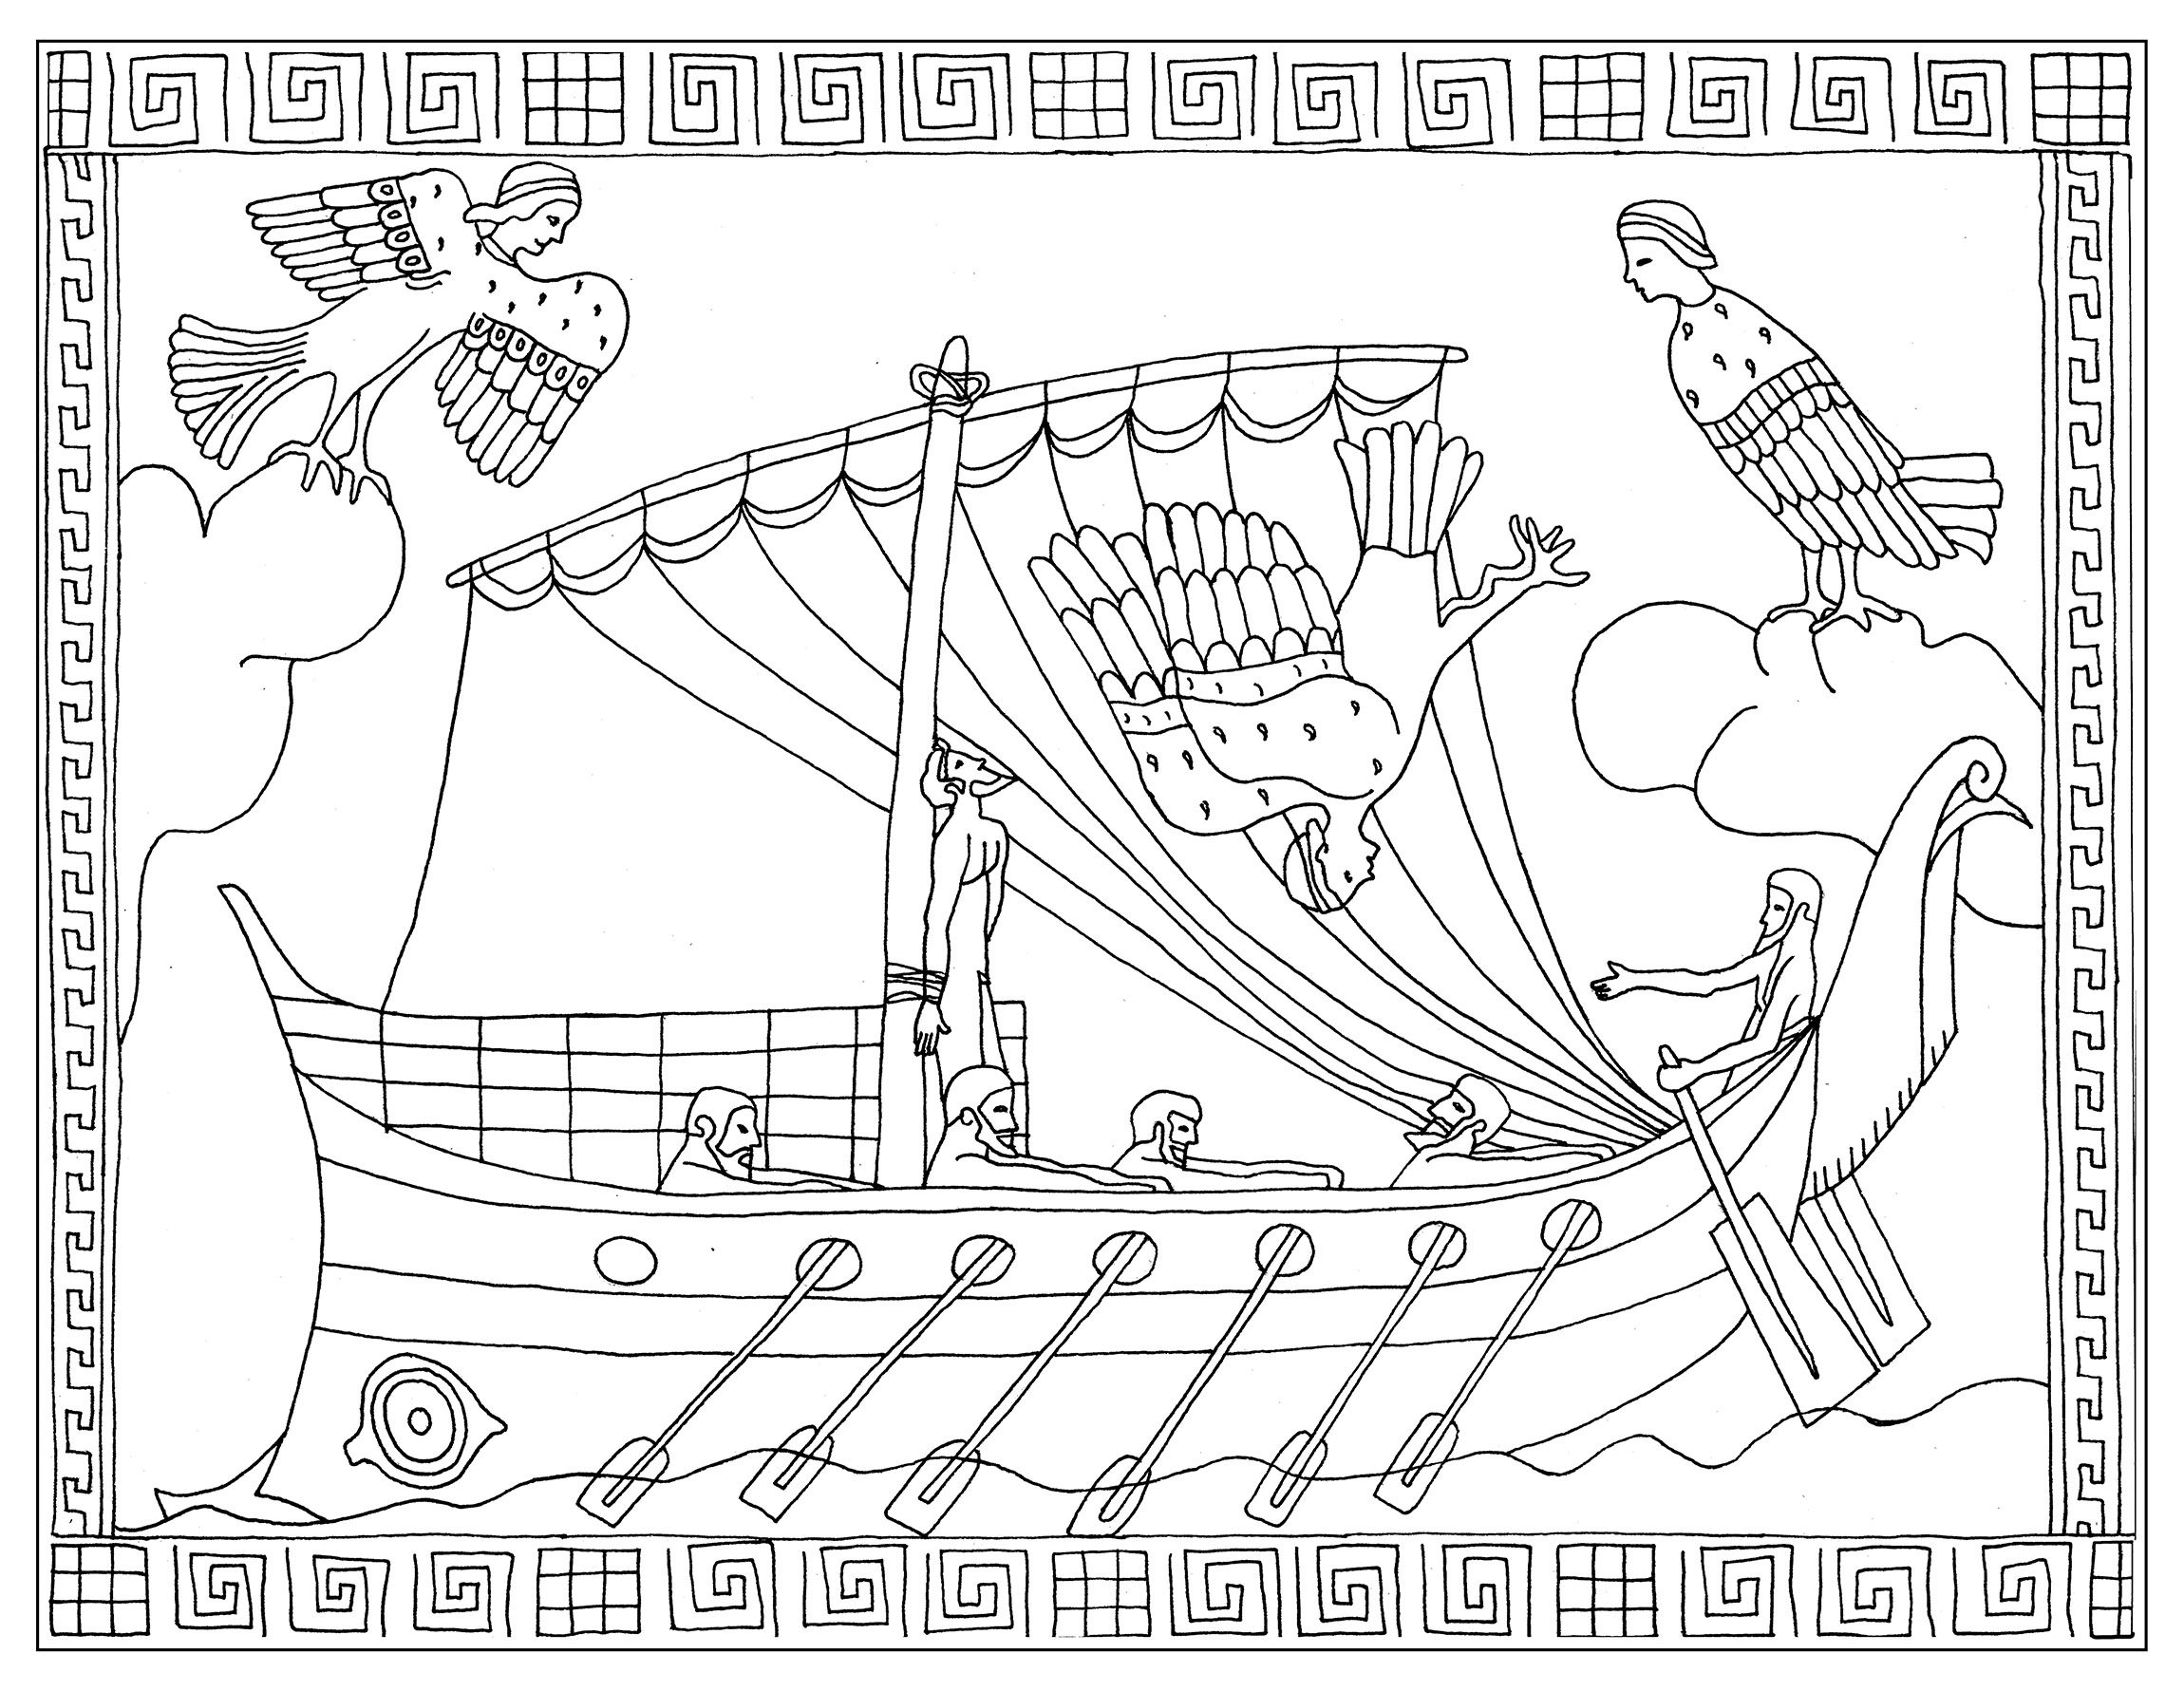 Coloring page inspired by a vase representing the episode of Ulysses and the sirens Stamnos (Homer's Odyssey)